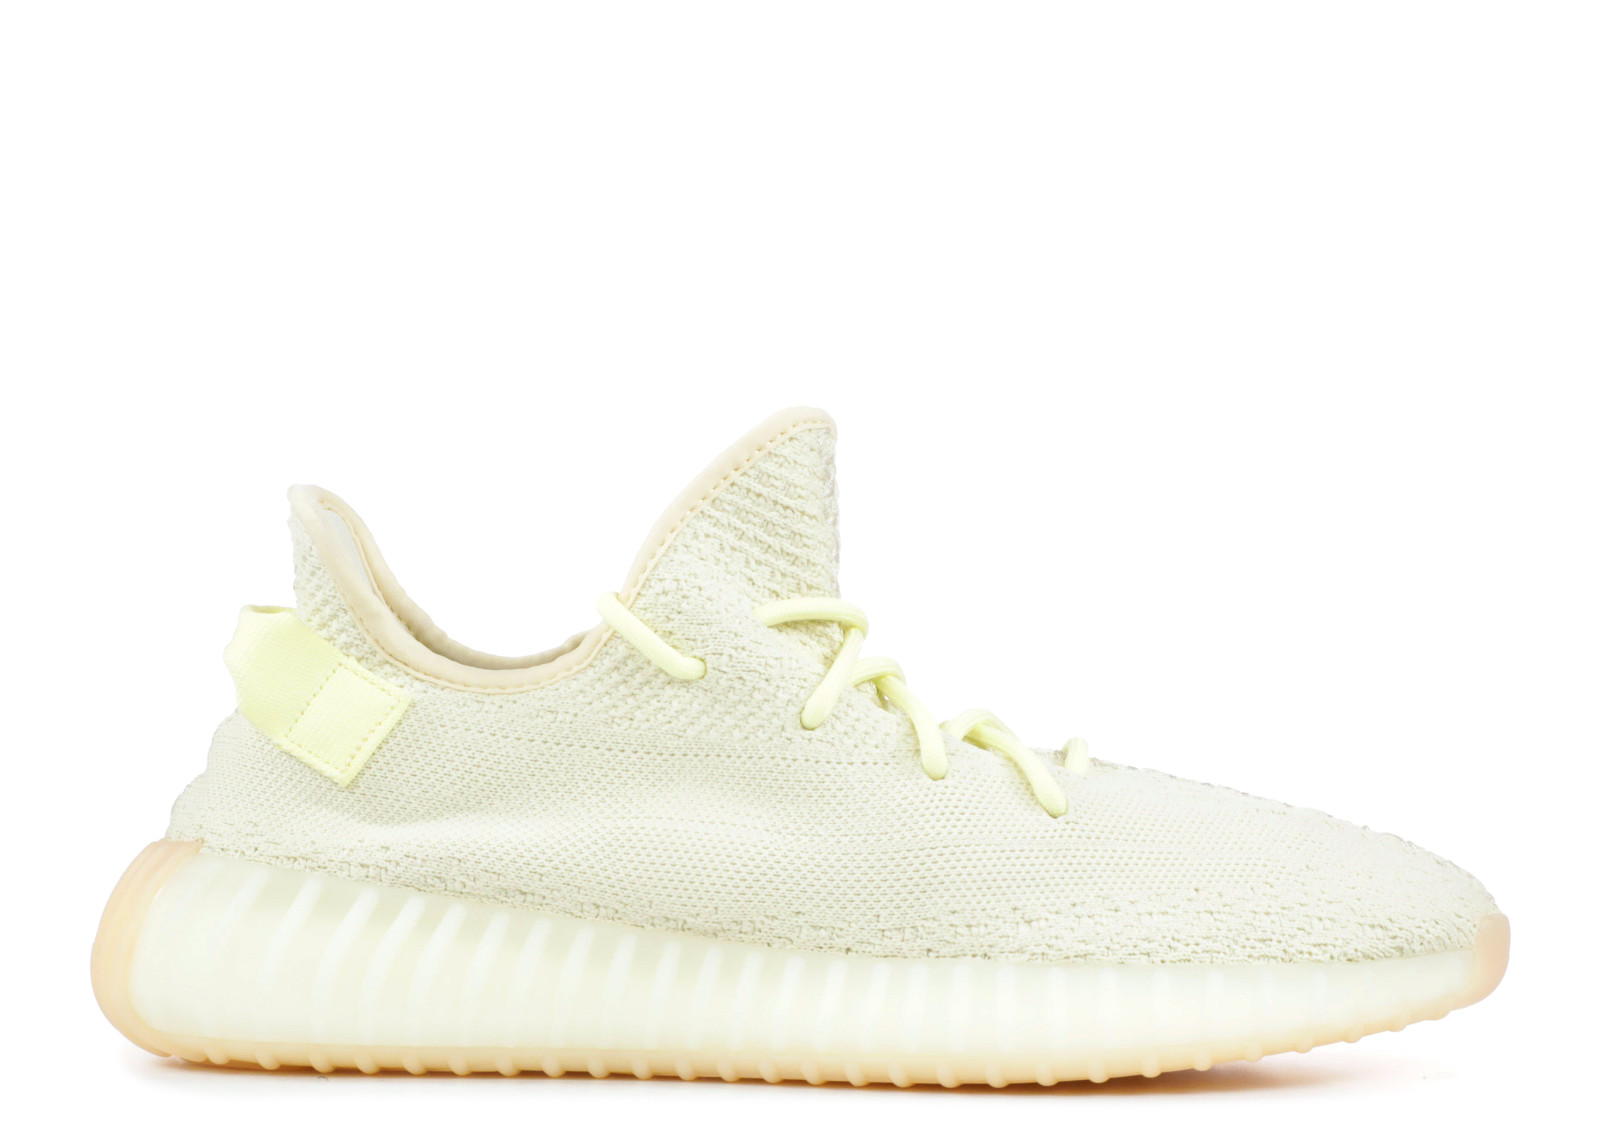 buy popular 7c681 000aa Details about ADIDAS YEEZY BOOST 350 V2 'BUTTER' - F36980